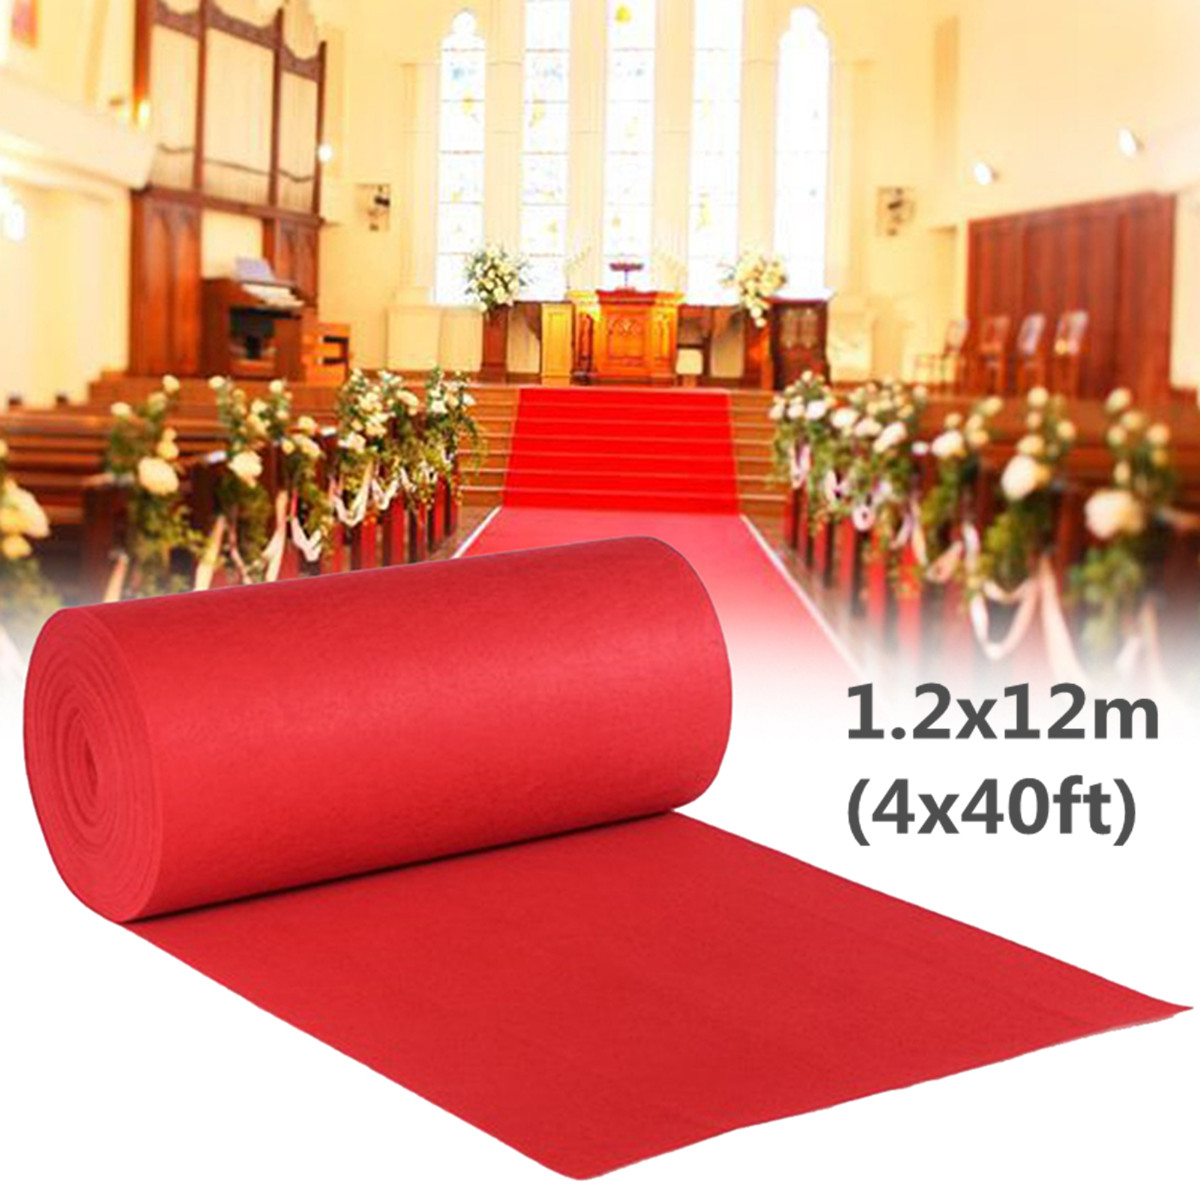 12x1.2m Red Carpet Wedding Aisle Floor Runner Hollywood Birthday Party Wedding Decoration Supplies Accessories 40ftx4ft